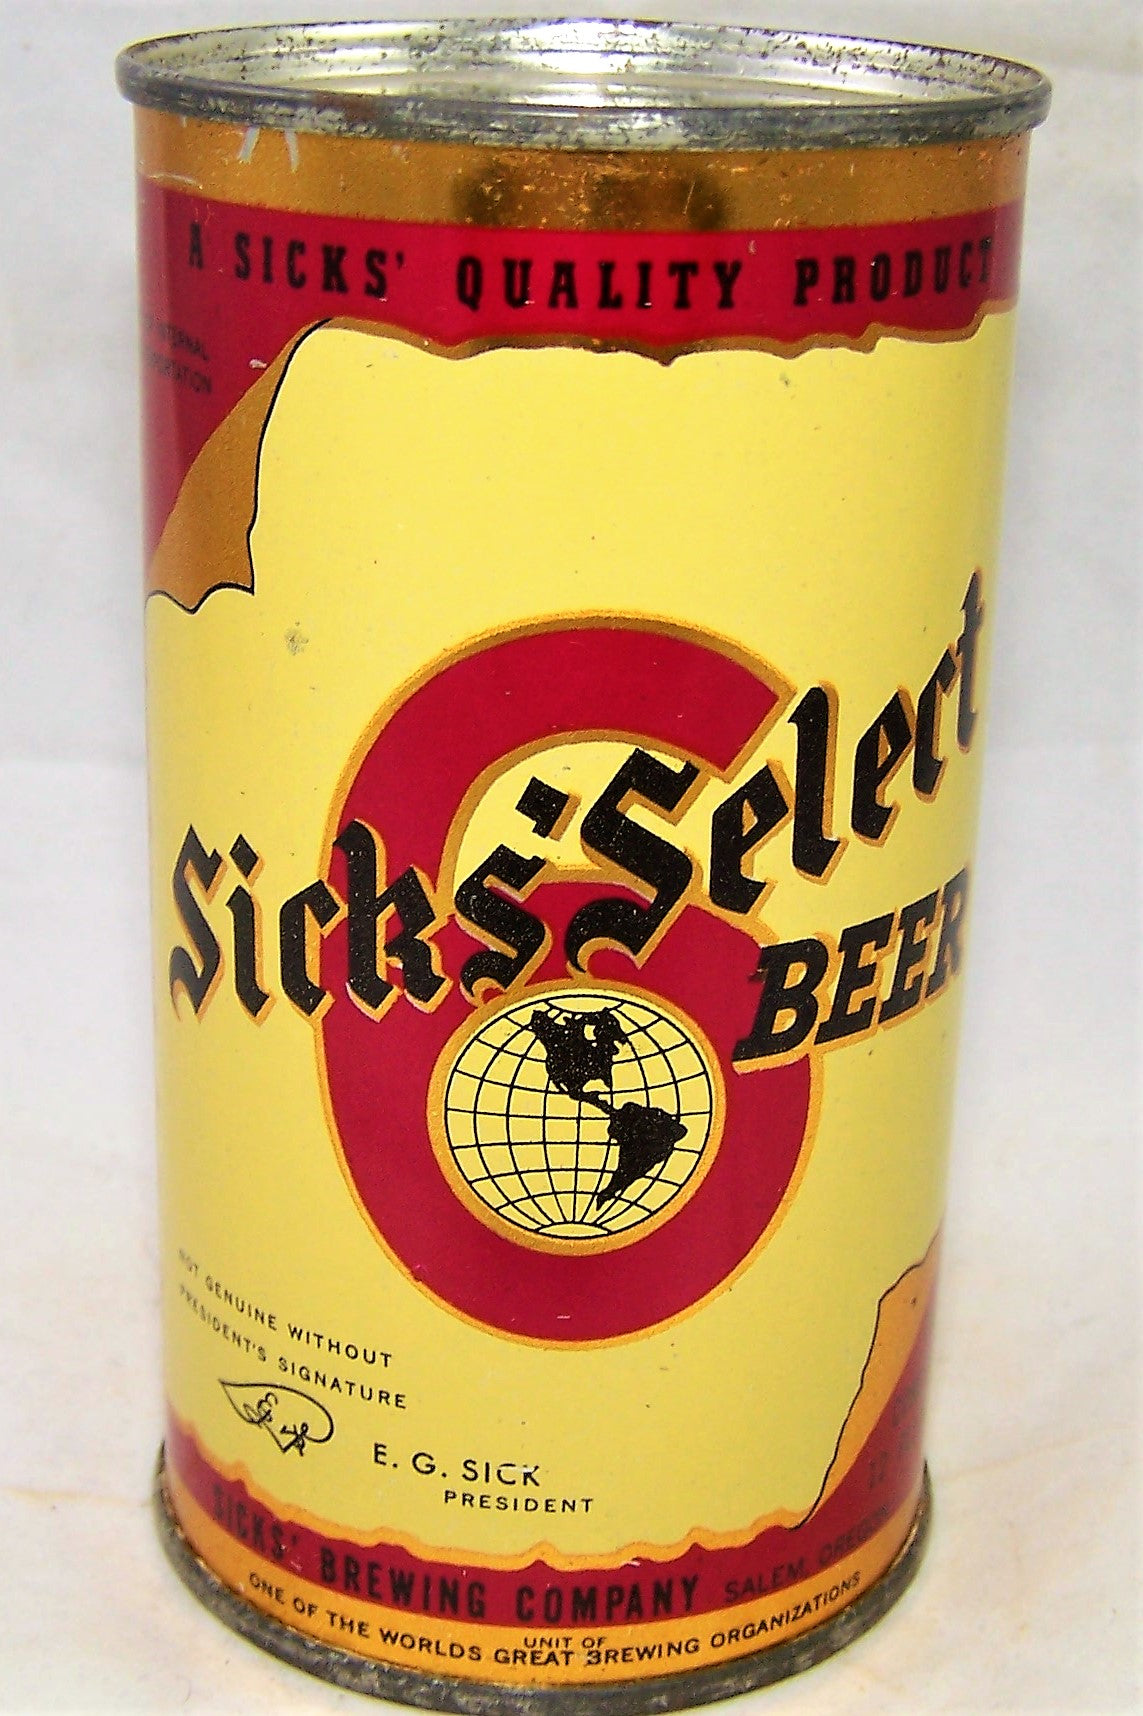 Sick's Select Beer, Withdrawn Free for export, Lilek #759, USBC 133-11, Grade 1